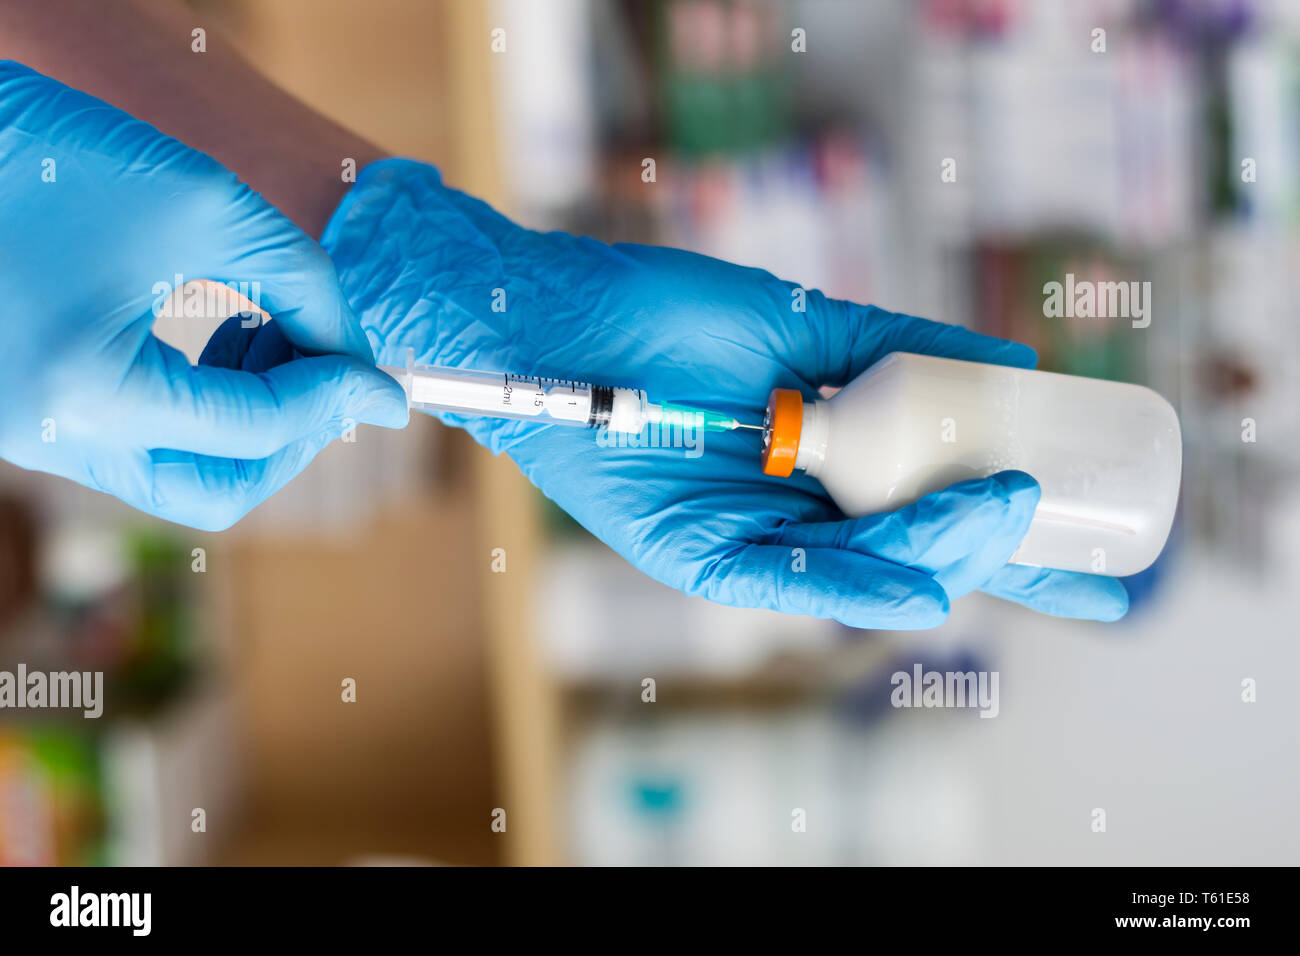 the veterinarian women with blue gloves extract a white drug with a syringe - Stock Image